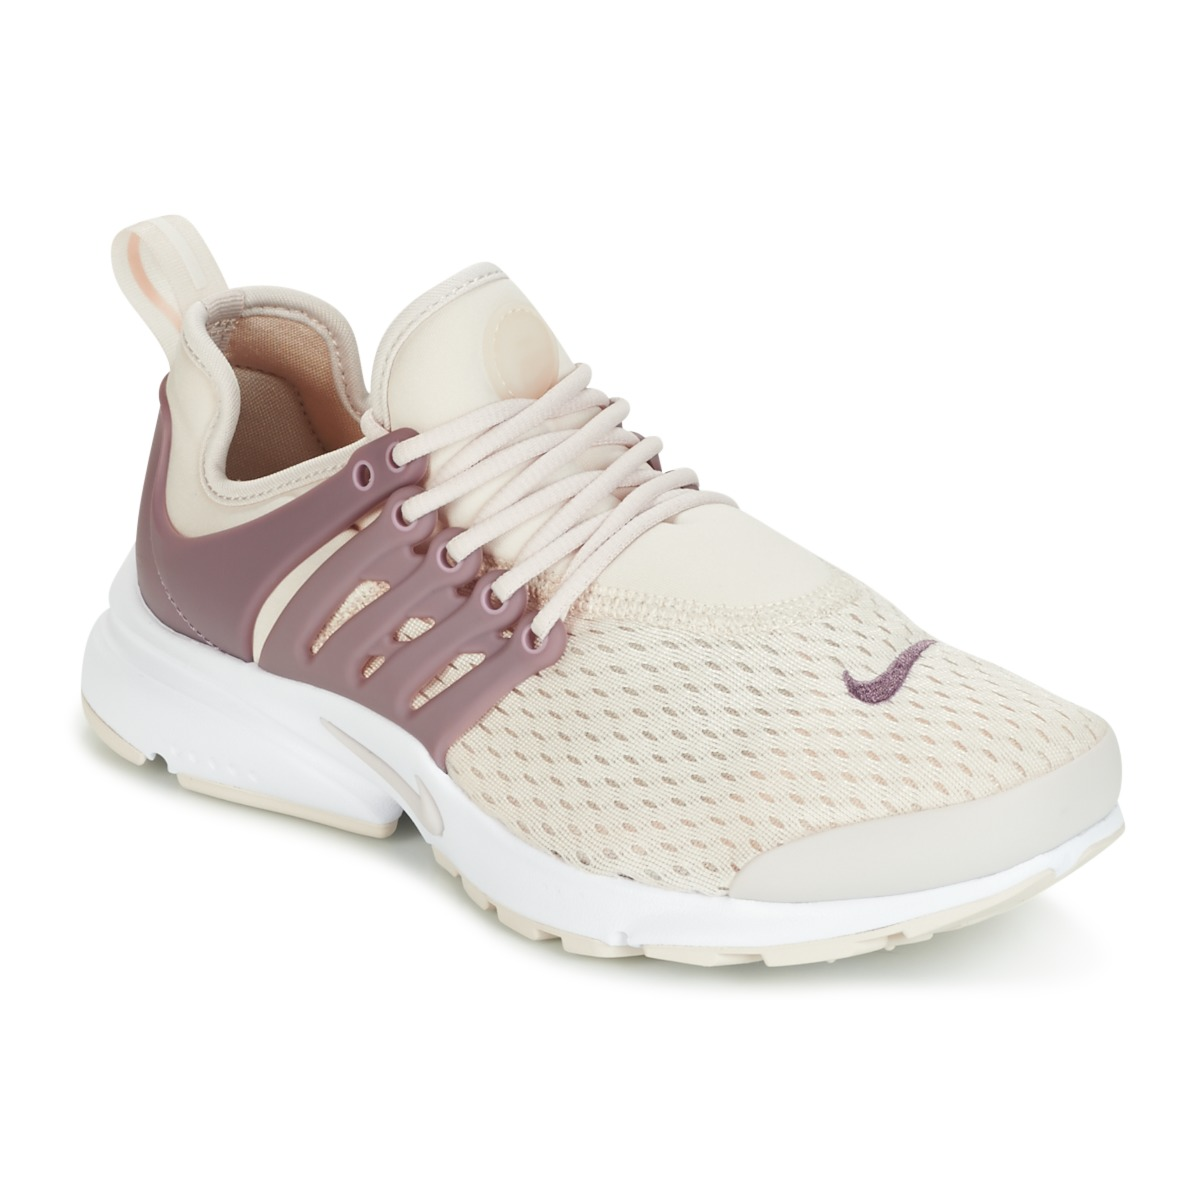 nike air presto w beige taupe pas cher baskets femme spartoo ventes pas. Black Bedroom Furniture Sets. Home Design Ideas